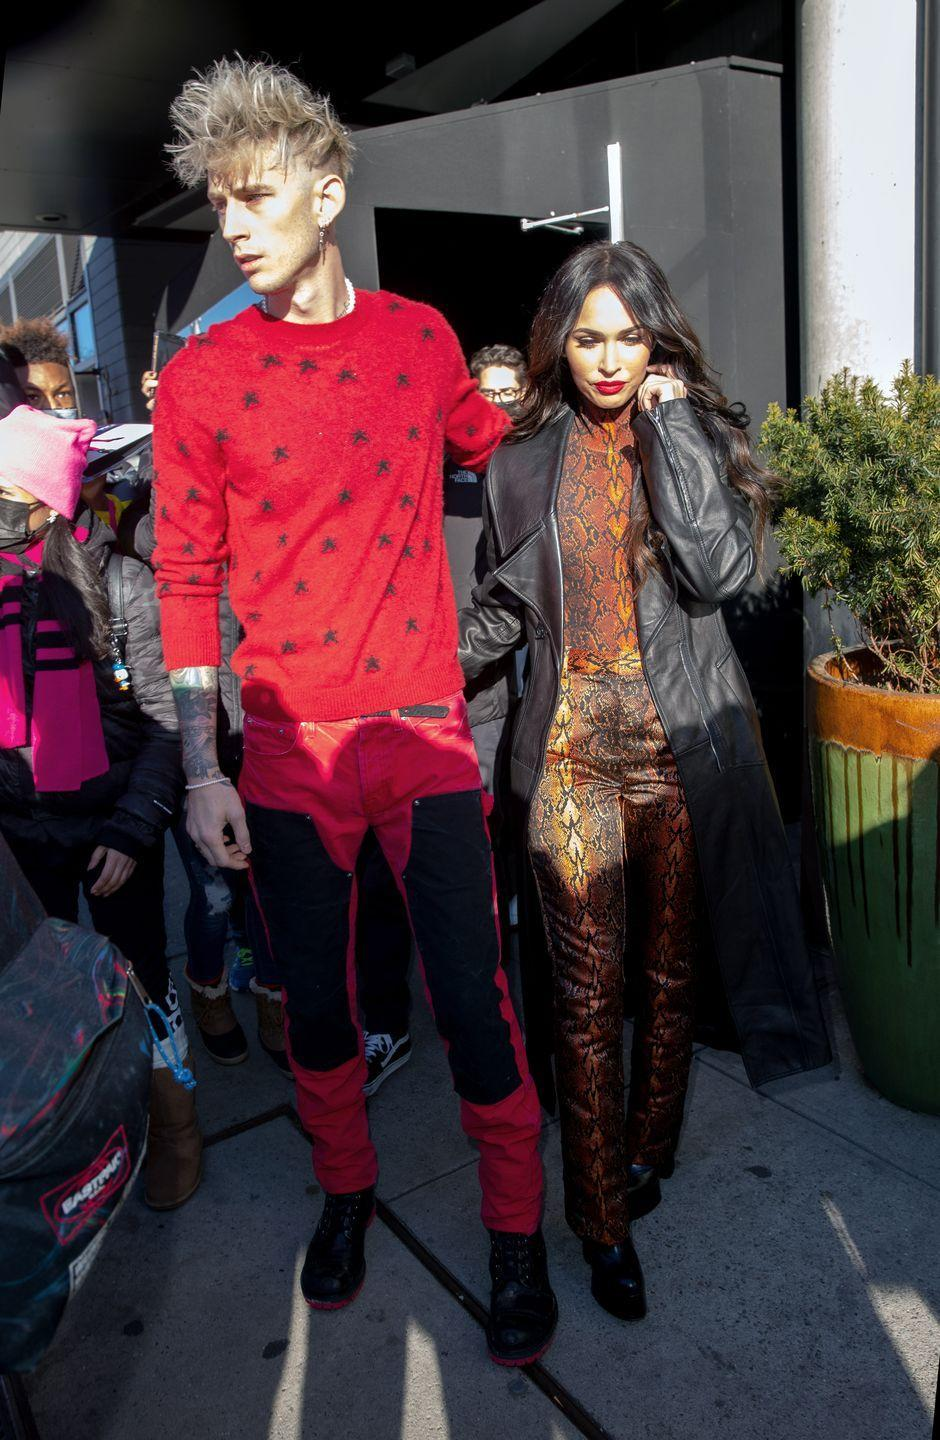 <p>Fox opted for a bold red snakeprint pair of trousers and matching high neck top ahead of her beau's TV appearance. She styled the look with a black leather jacket and a red lip. </p>